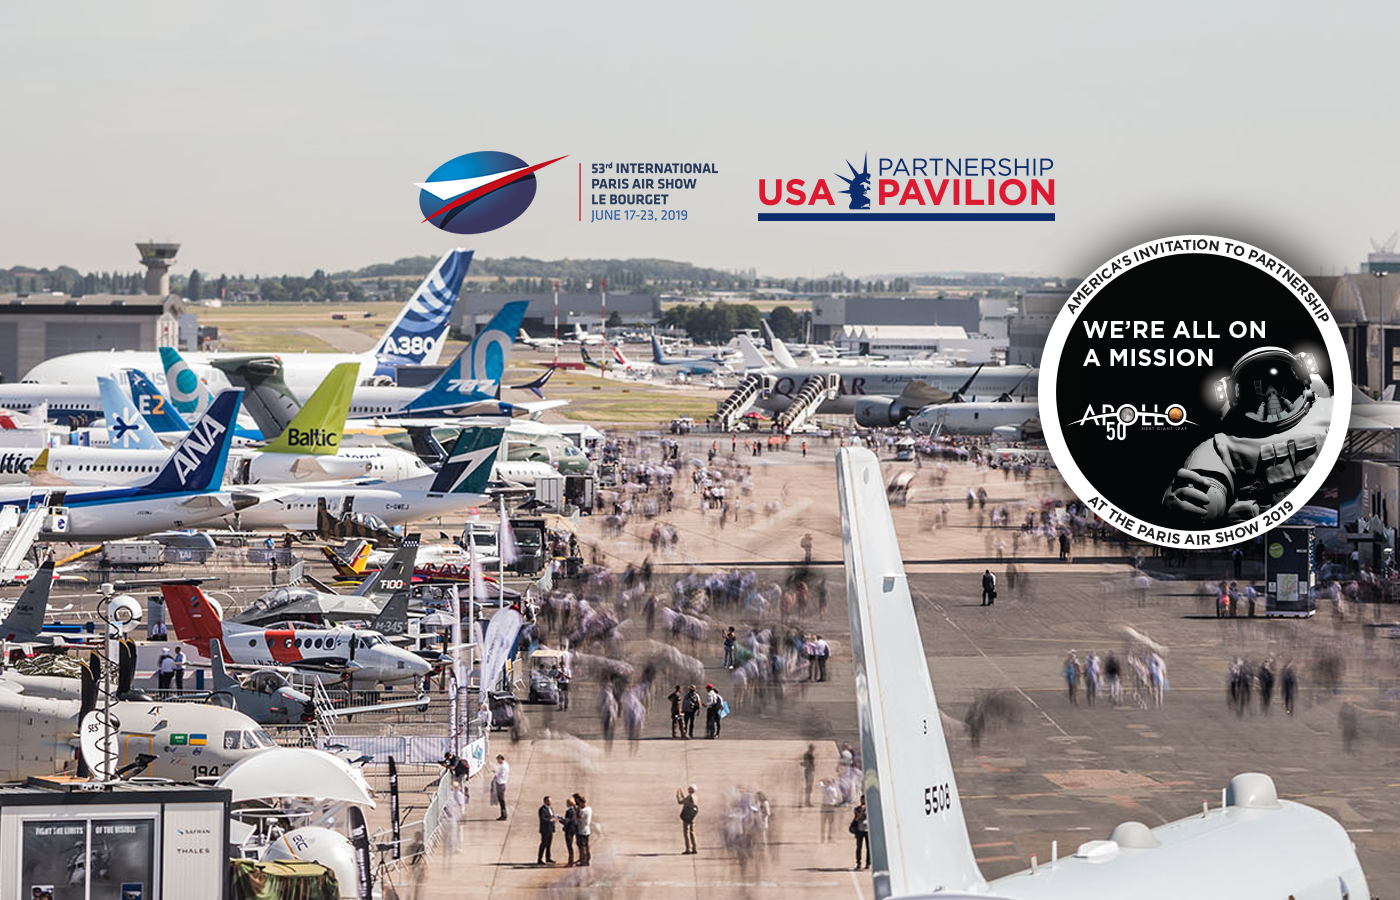 Paris Air Show 2019 Exhibitor List | Kallman Worldwide, INC